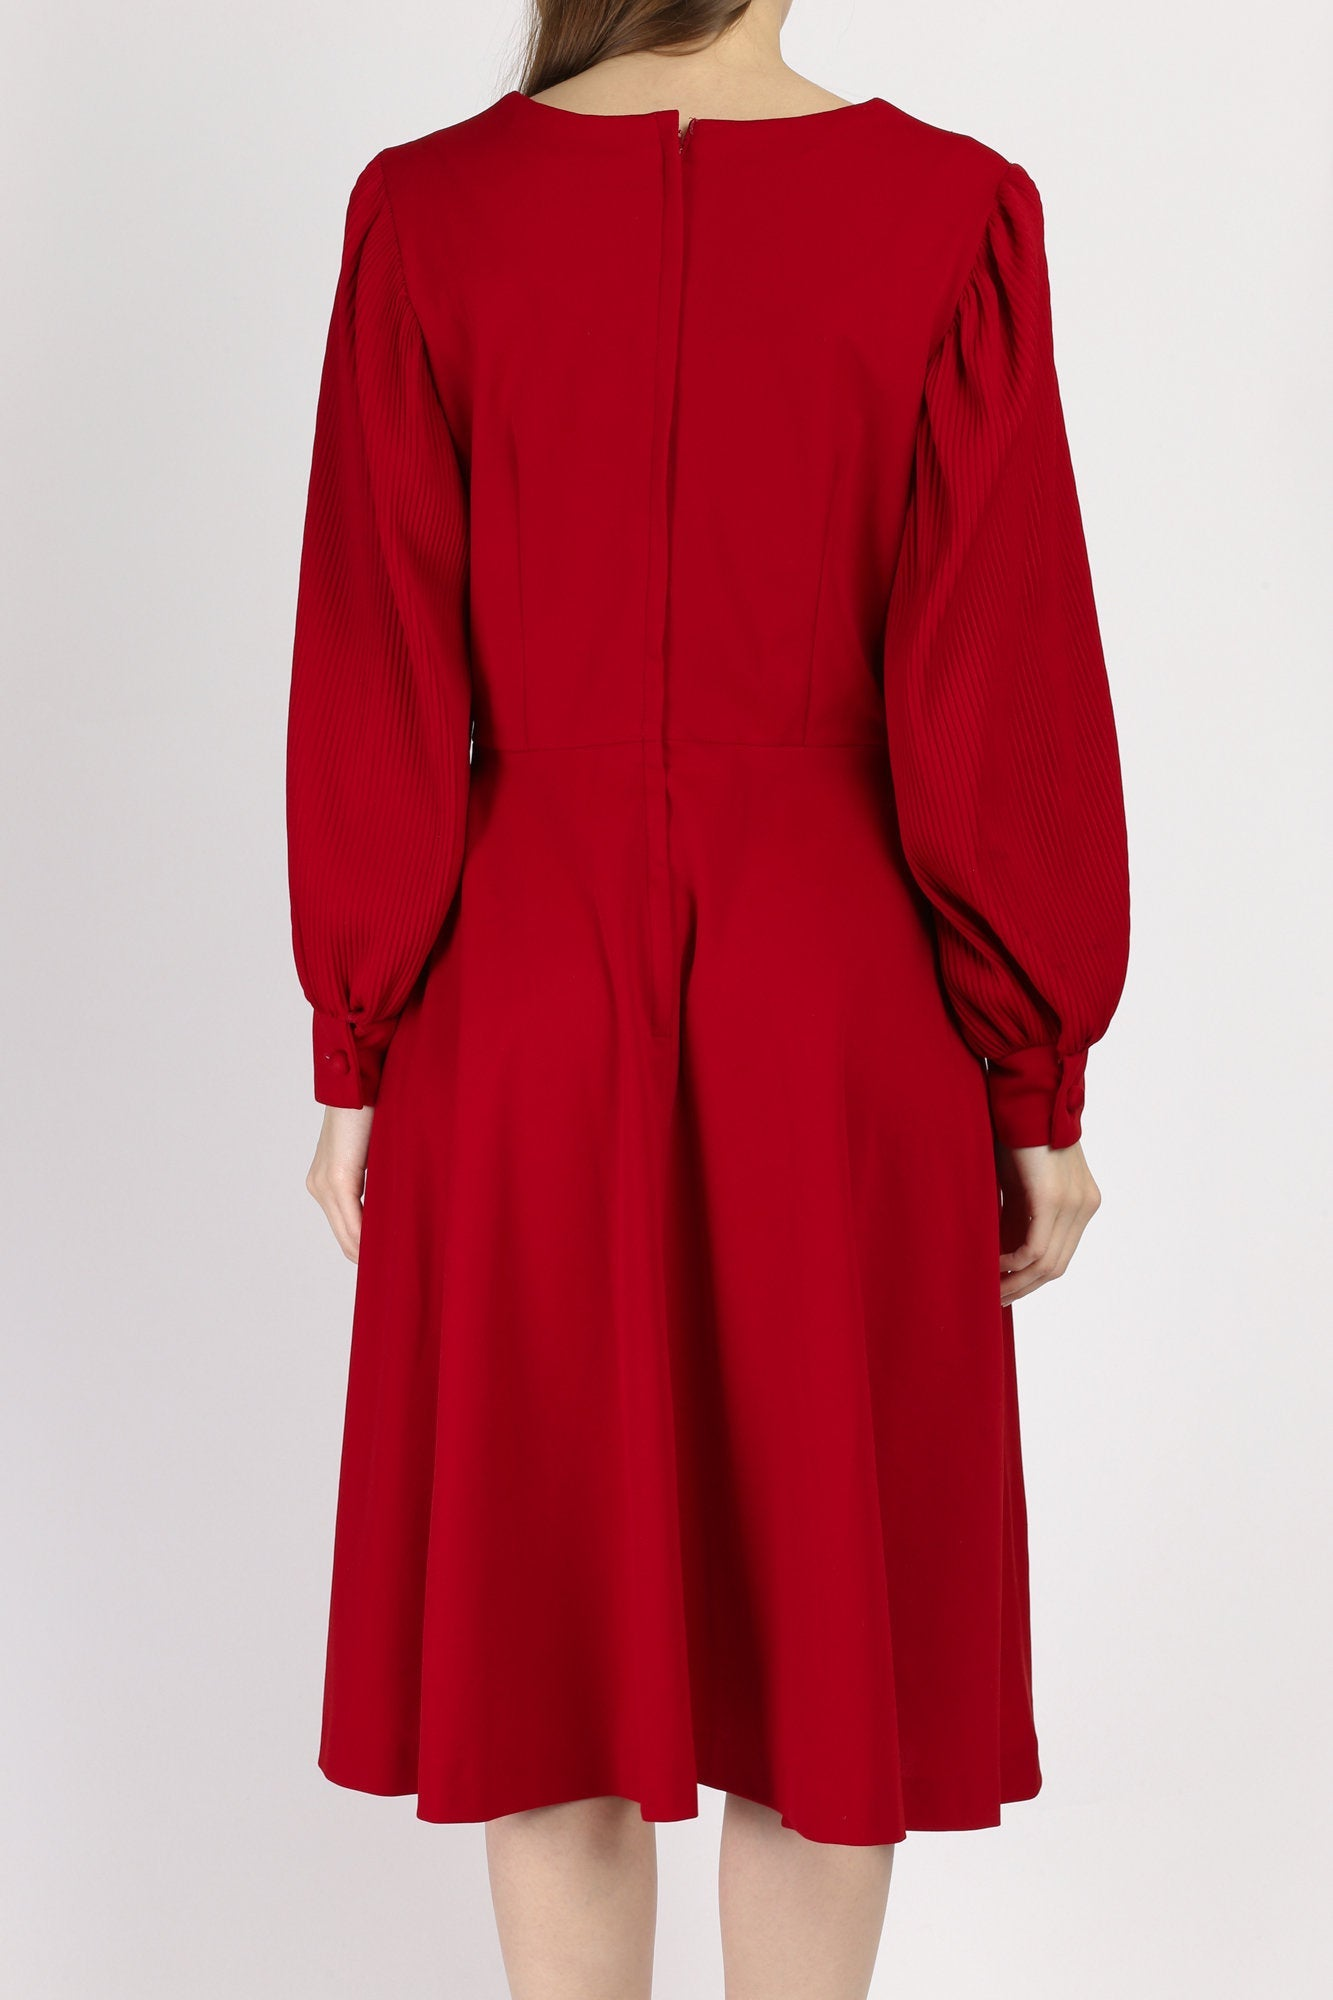 70s Red Balloon Sleeve Midi Dress - Medium to Large